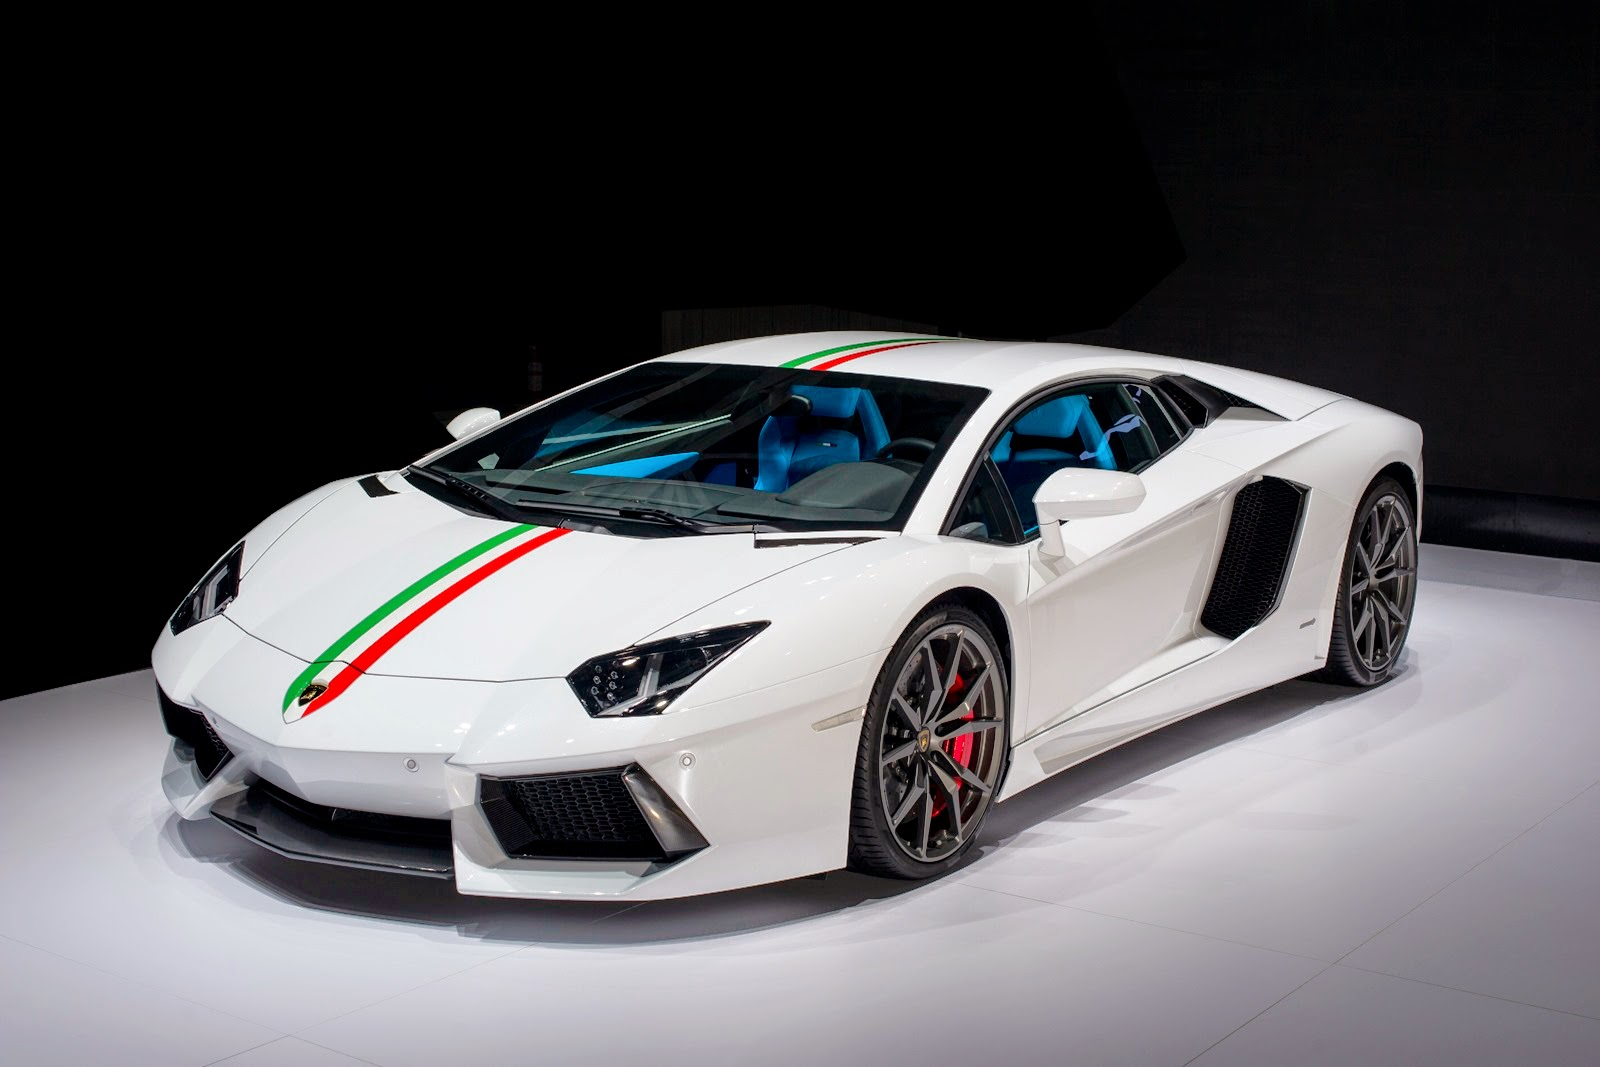 hight resolution of lamborghini ad personam cars wallpapers the most exclusive cars from the lamborghini ad